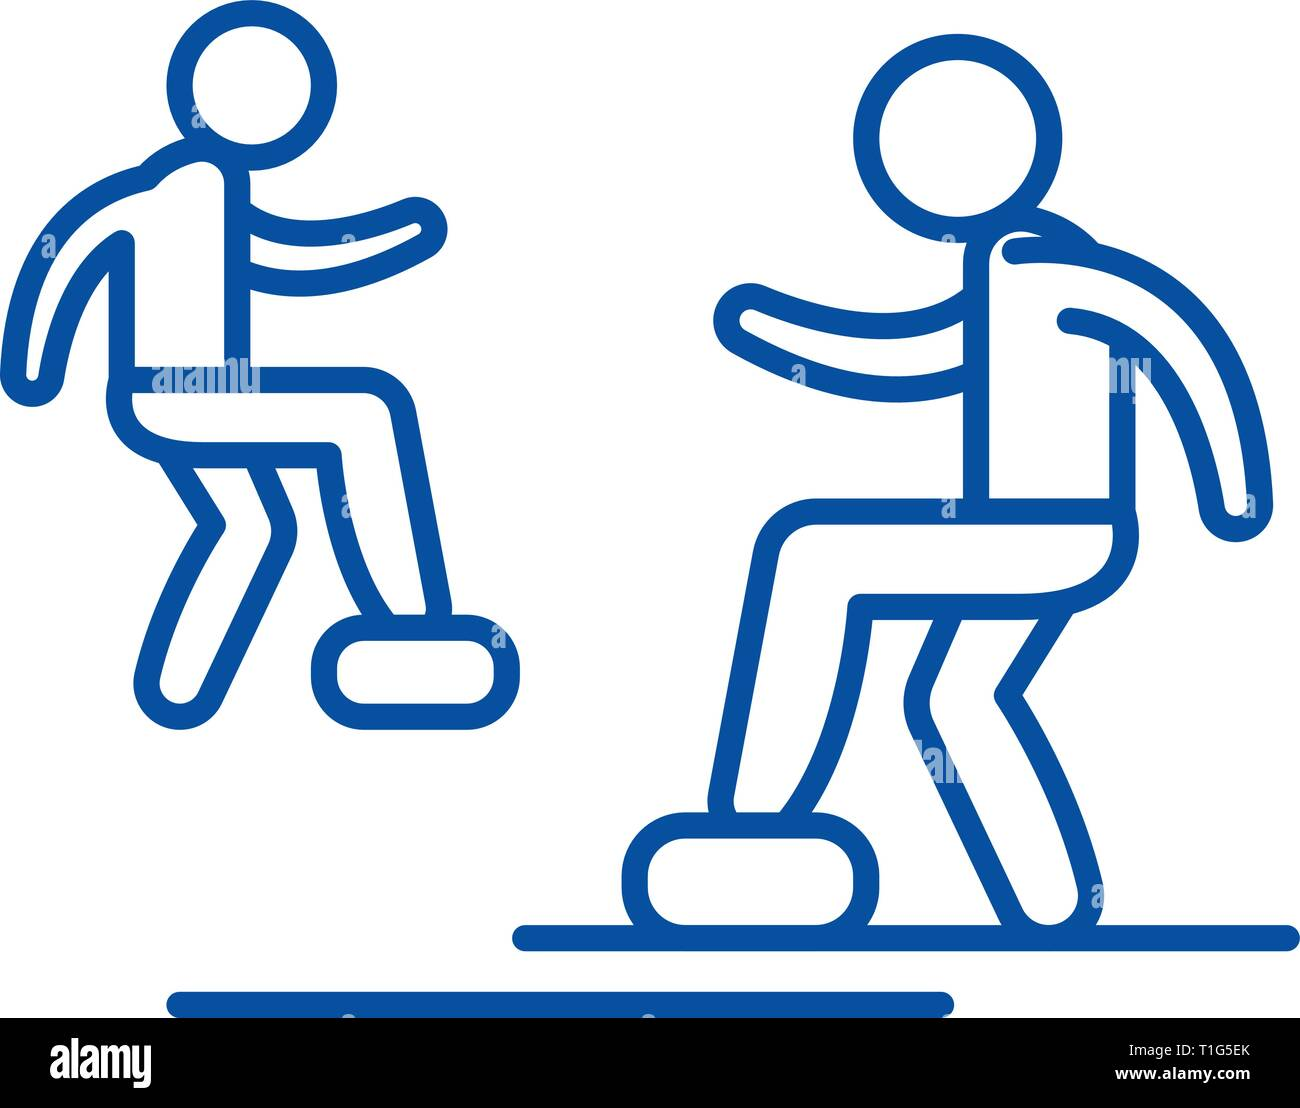 Cardio exercise line icon concept. Cardio exercise flat  vector symbol, sign, outline illustration. - Stock Image